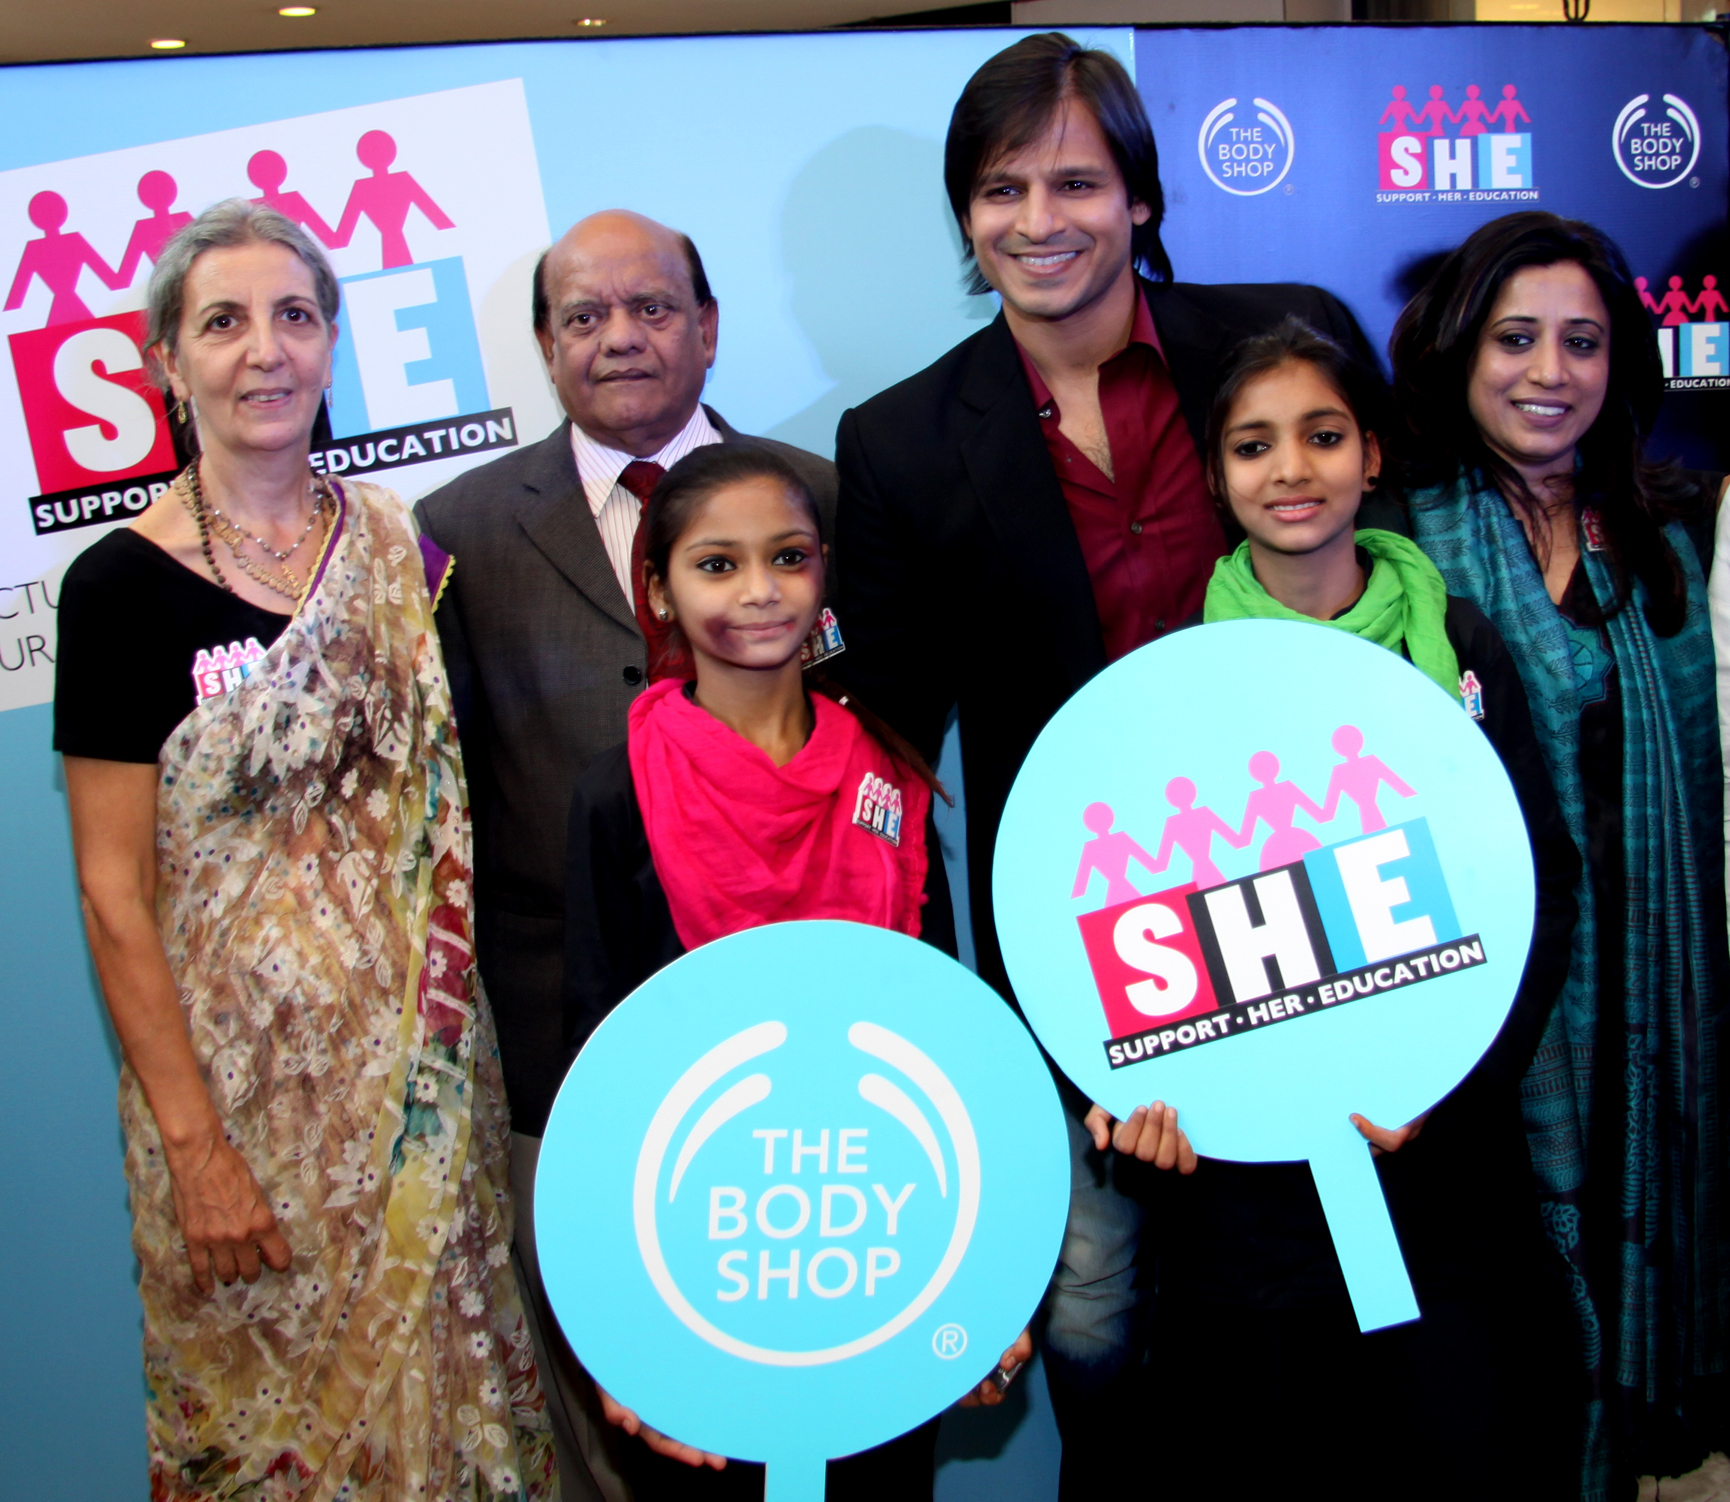 Co -founder FFLV Nikuja Vasini, Padmshree Surender Sharma,  Actor Vivek Oberoi, , and COO The Body Shop Shriti Malhotra at The Body Shop Event Campaign SHE- Support her education .jpg